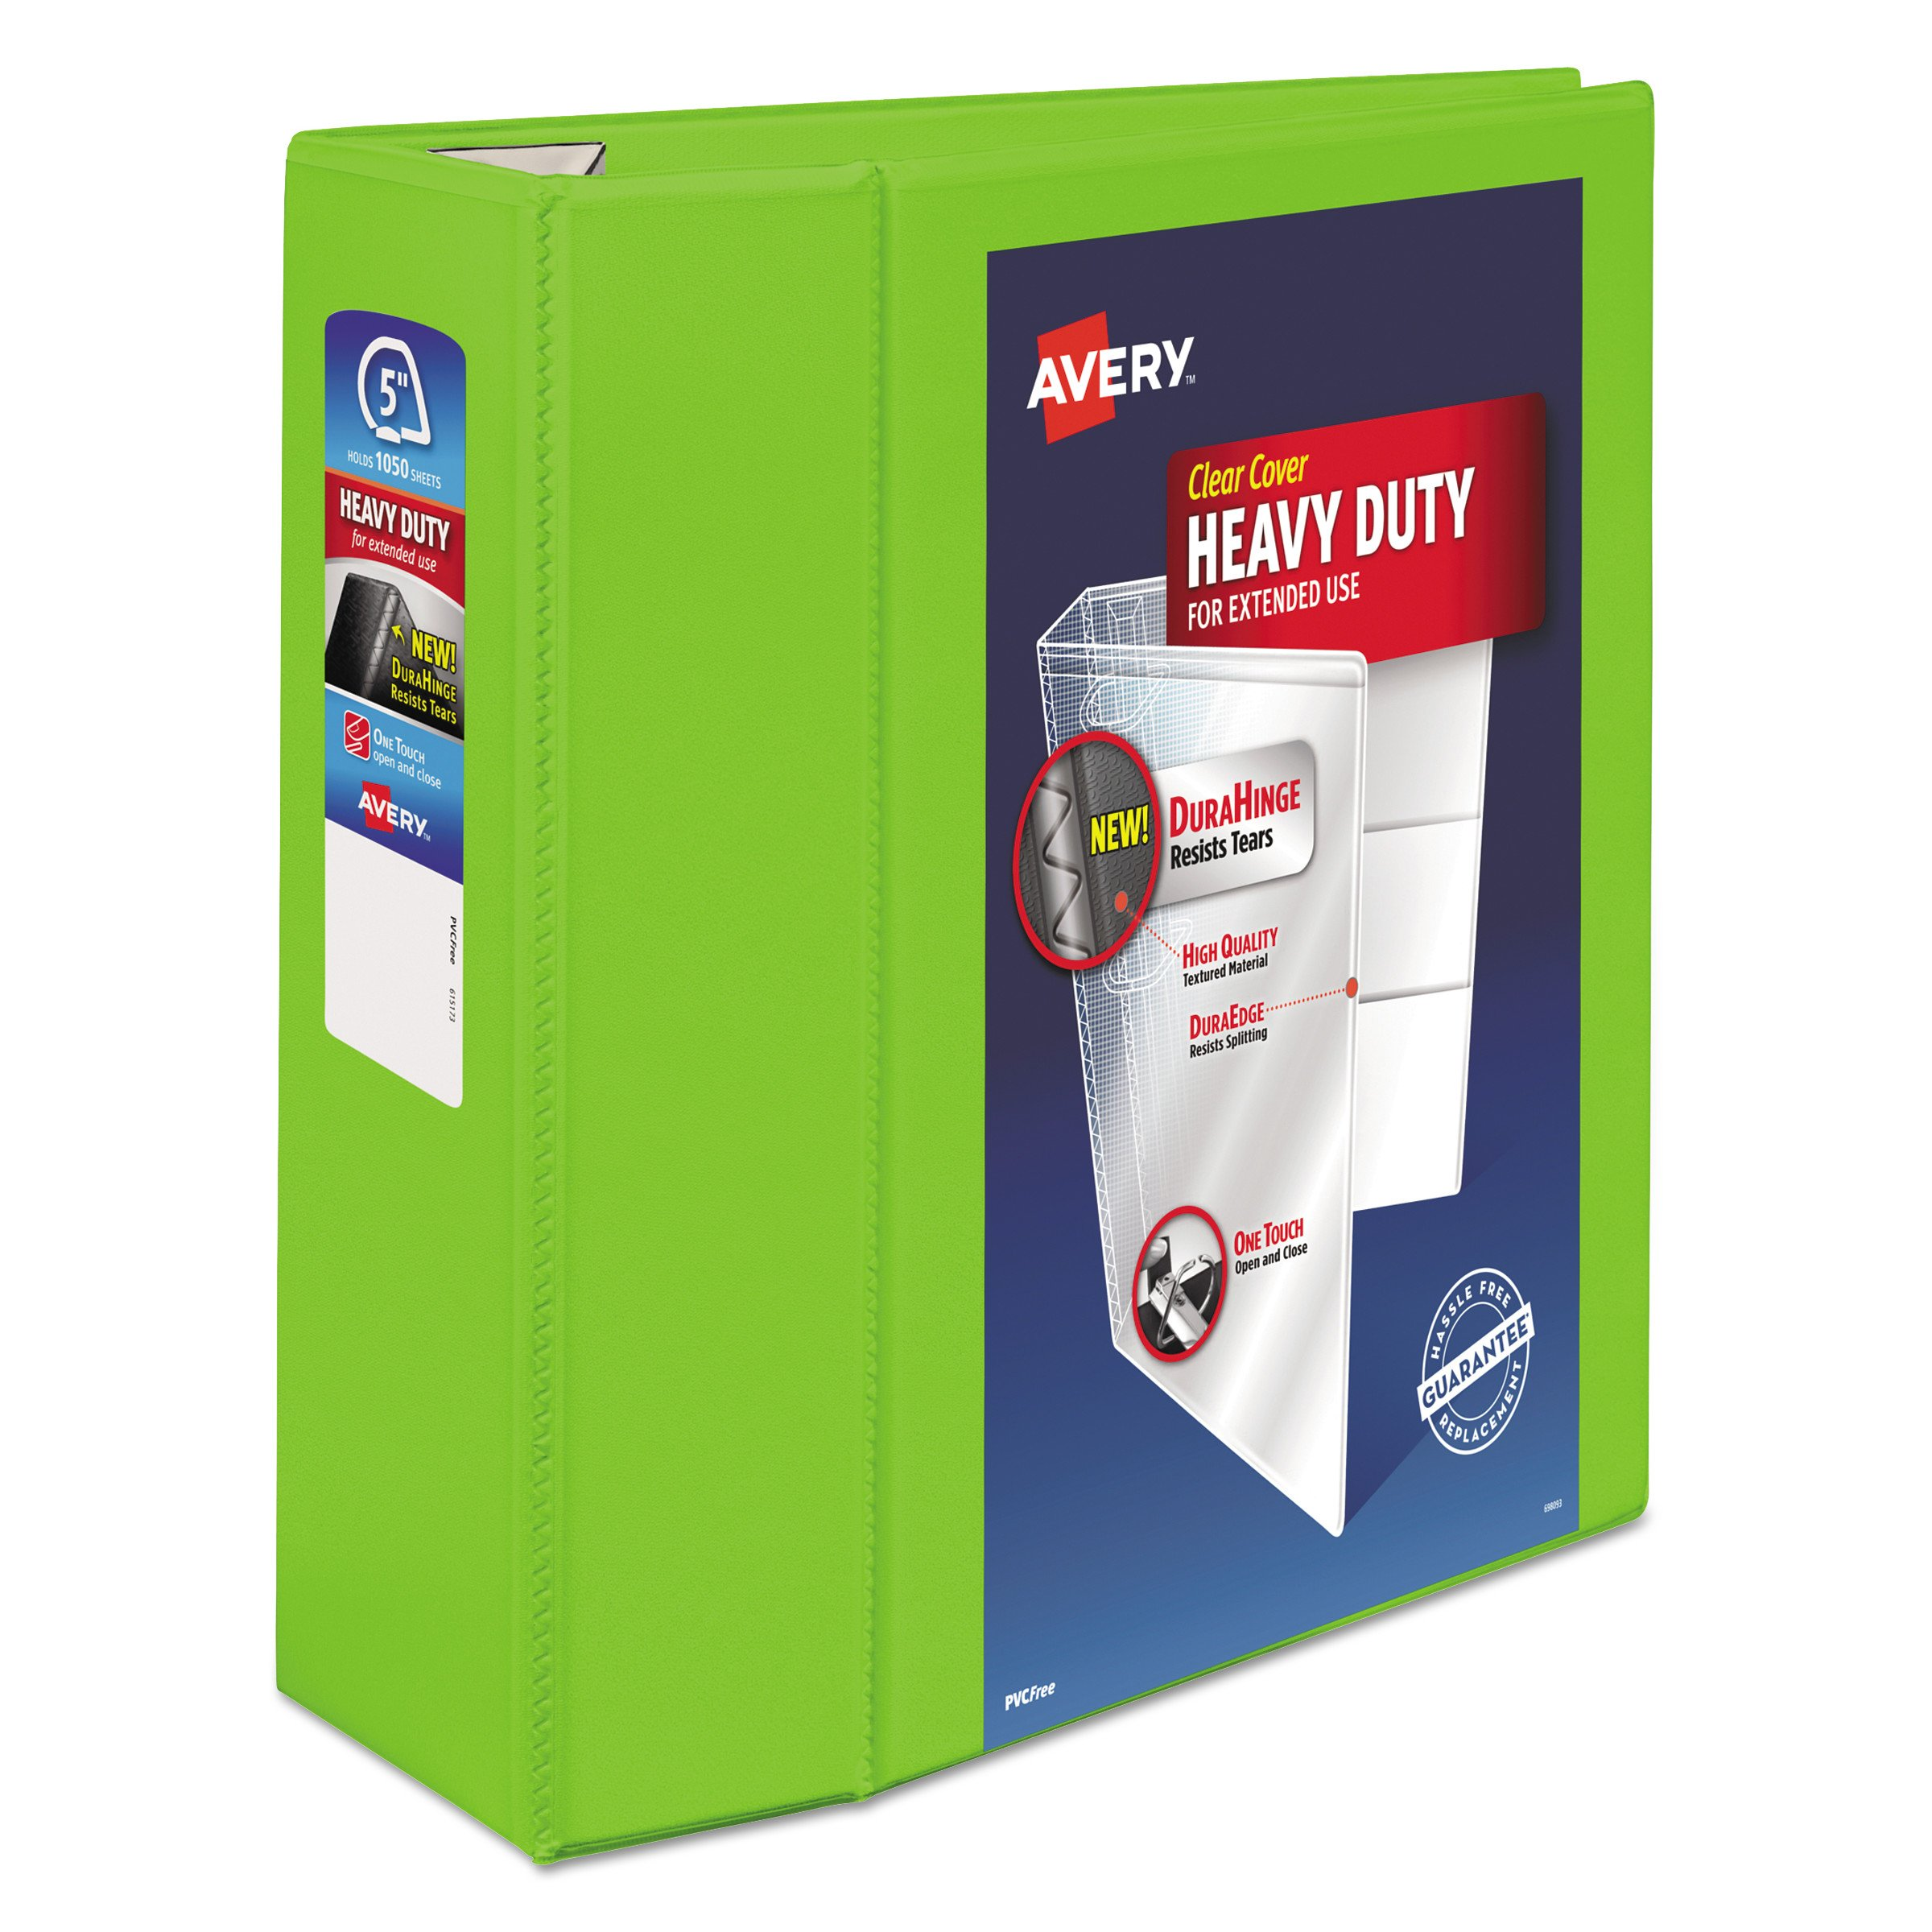 Avery Heavy Duty View 3 Ring Binder, 5'' One Touch EZD Ring, Holds 8.5'' x 11'' Paper, 1 Chartreuse Binder (79815) by AVERY